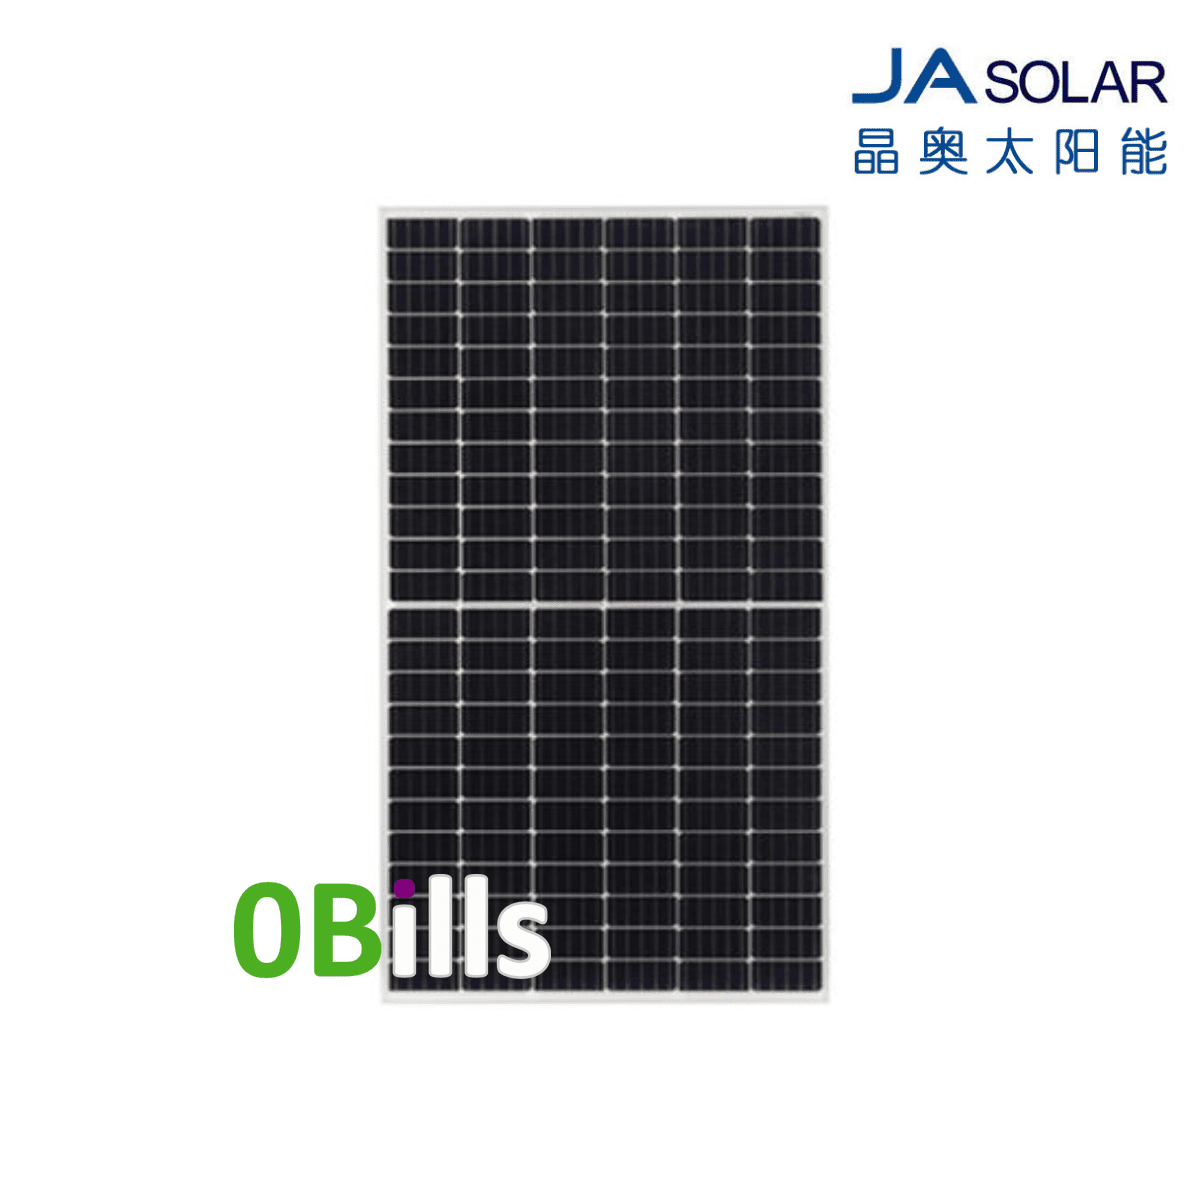 JA Solar JAM60S20-380/MR 380W Solar Panel MCS